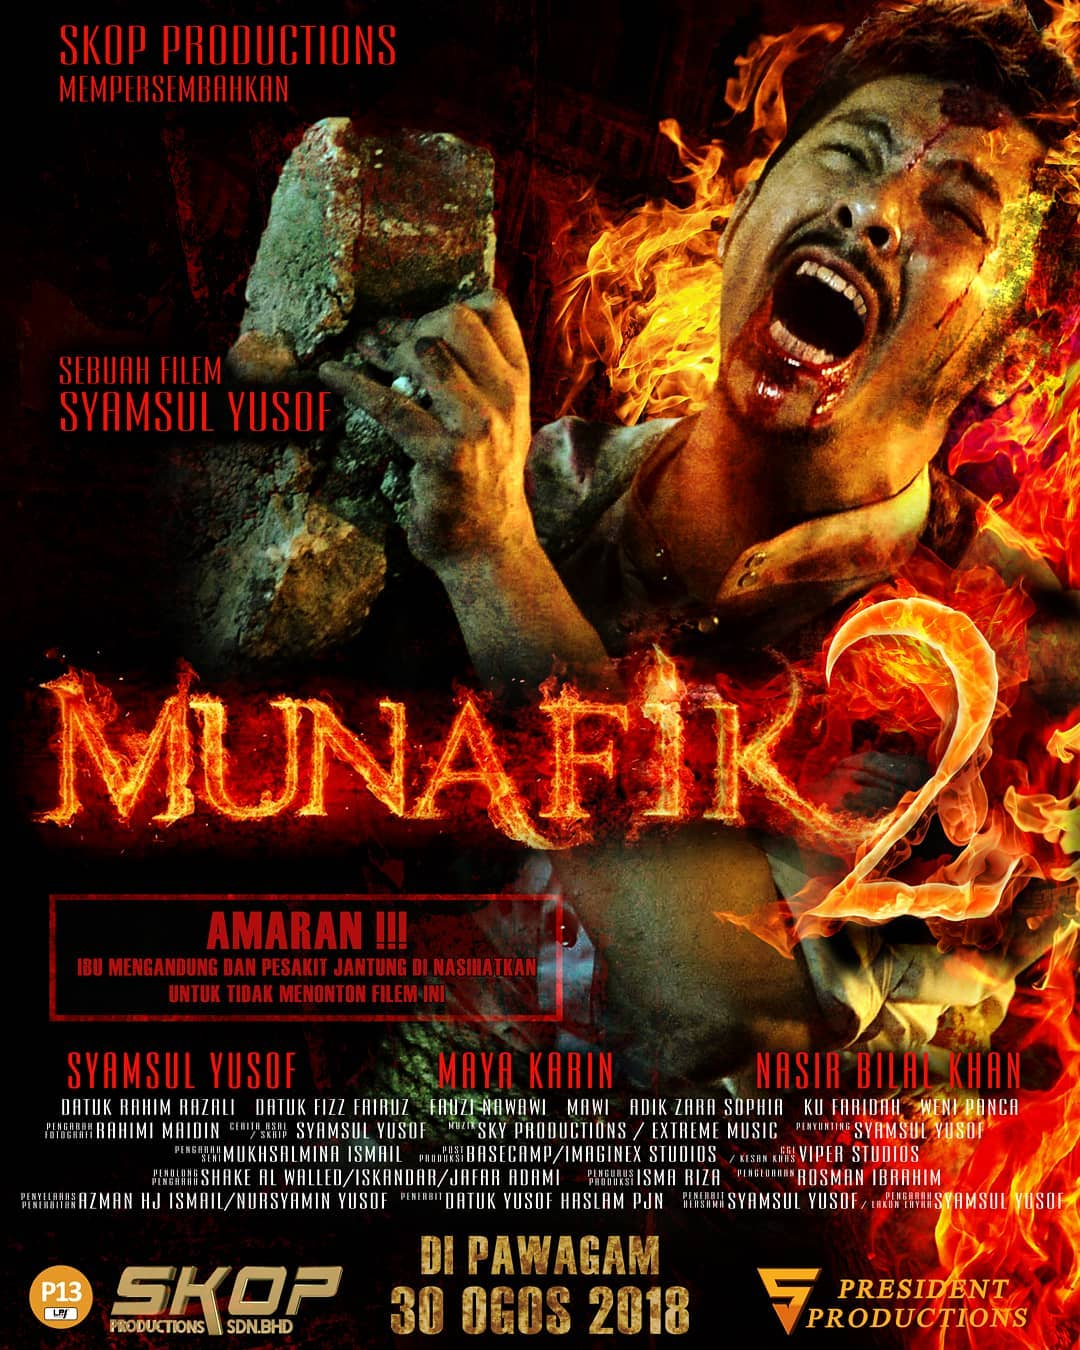 munafik 2 official poster